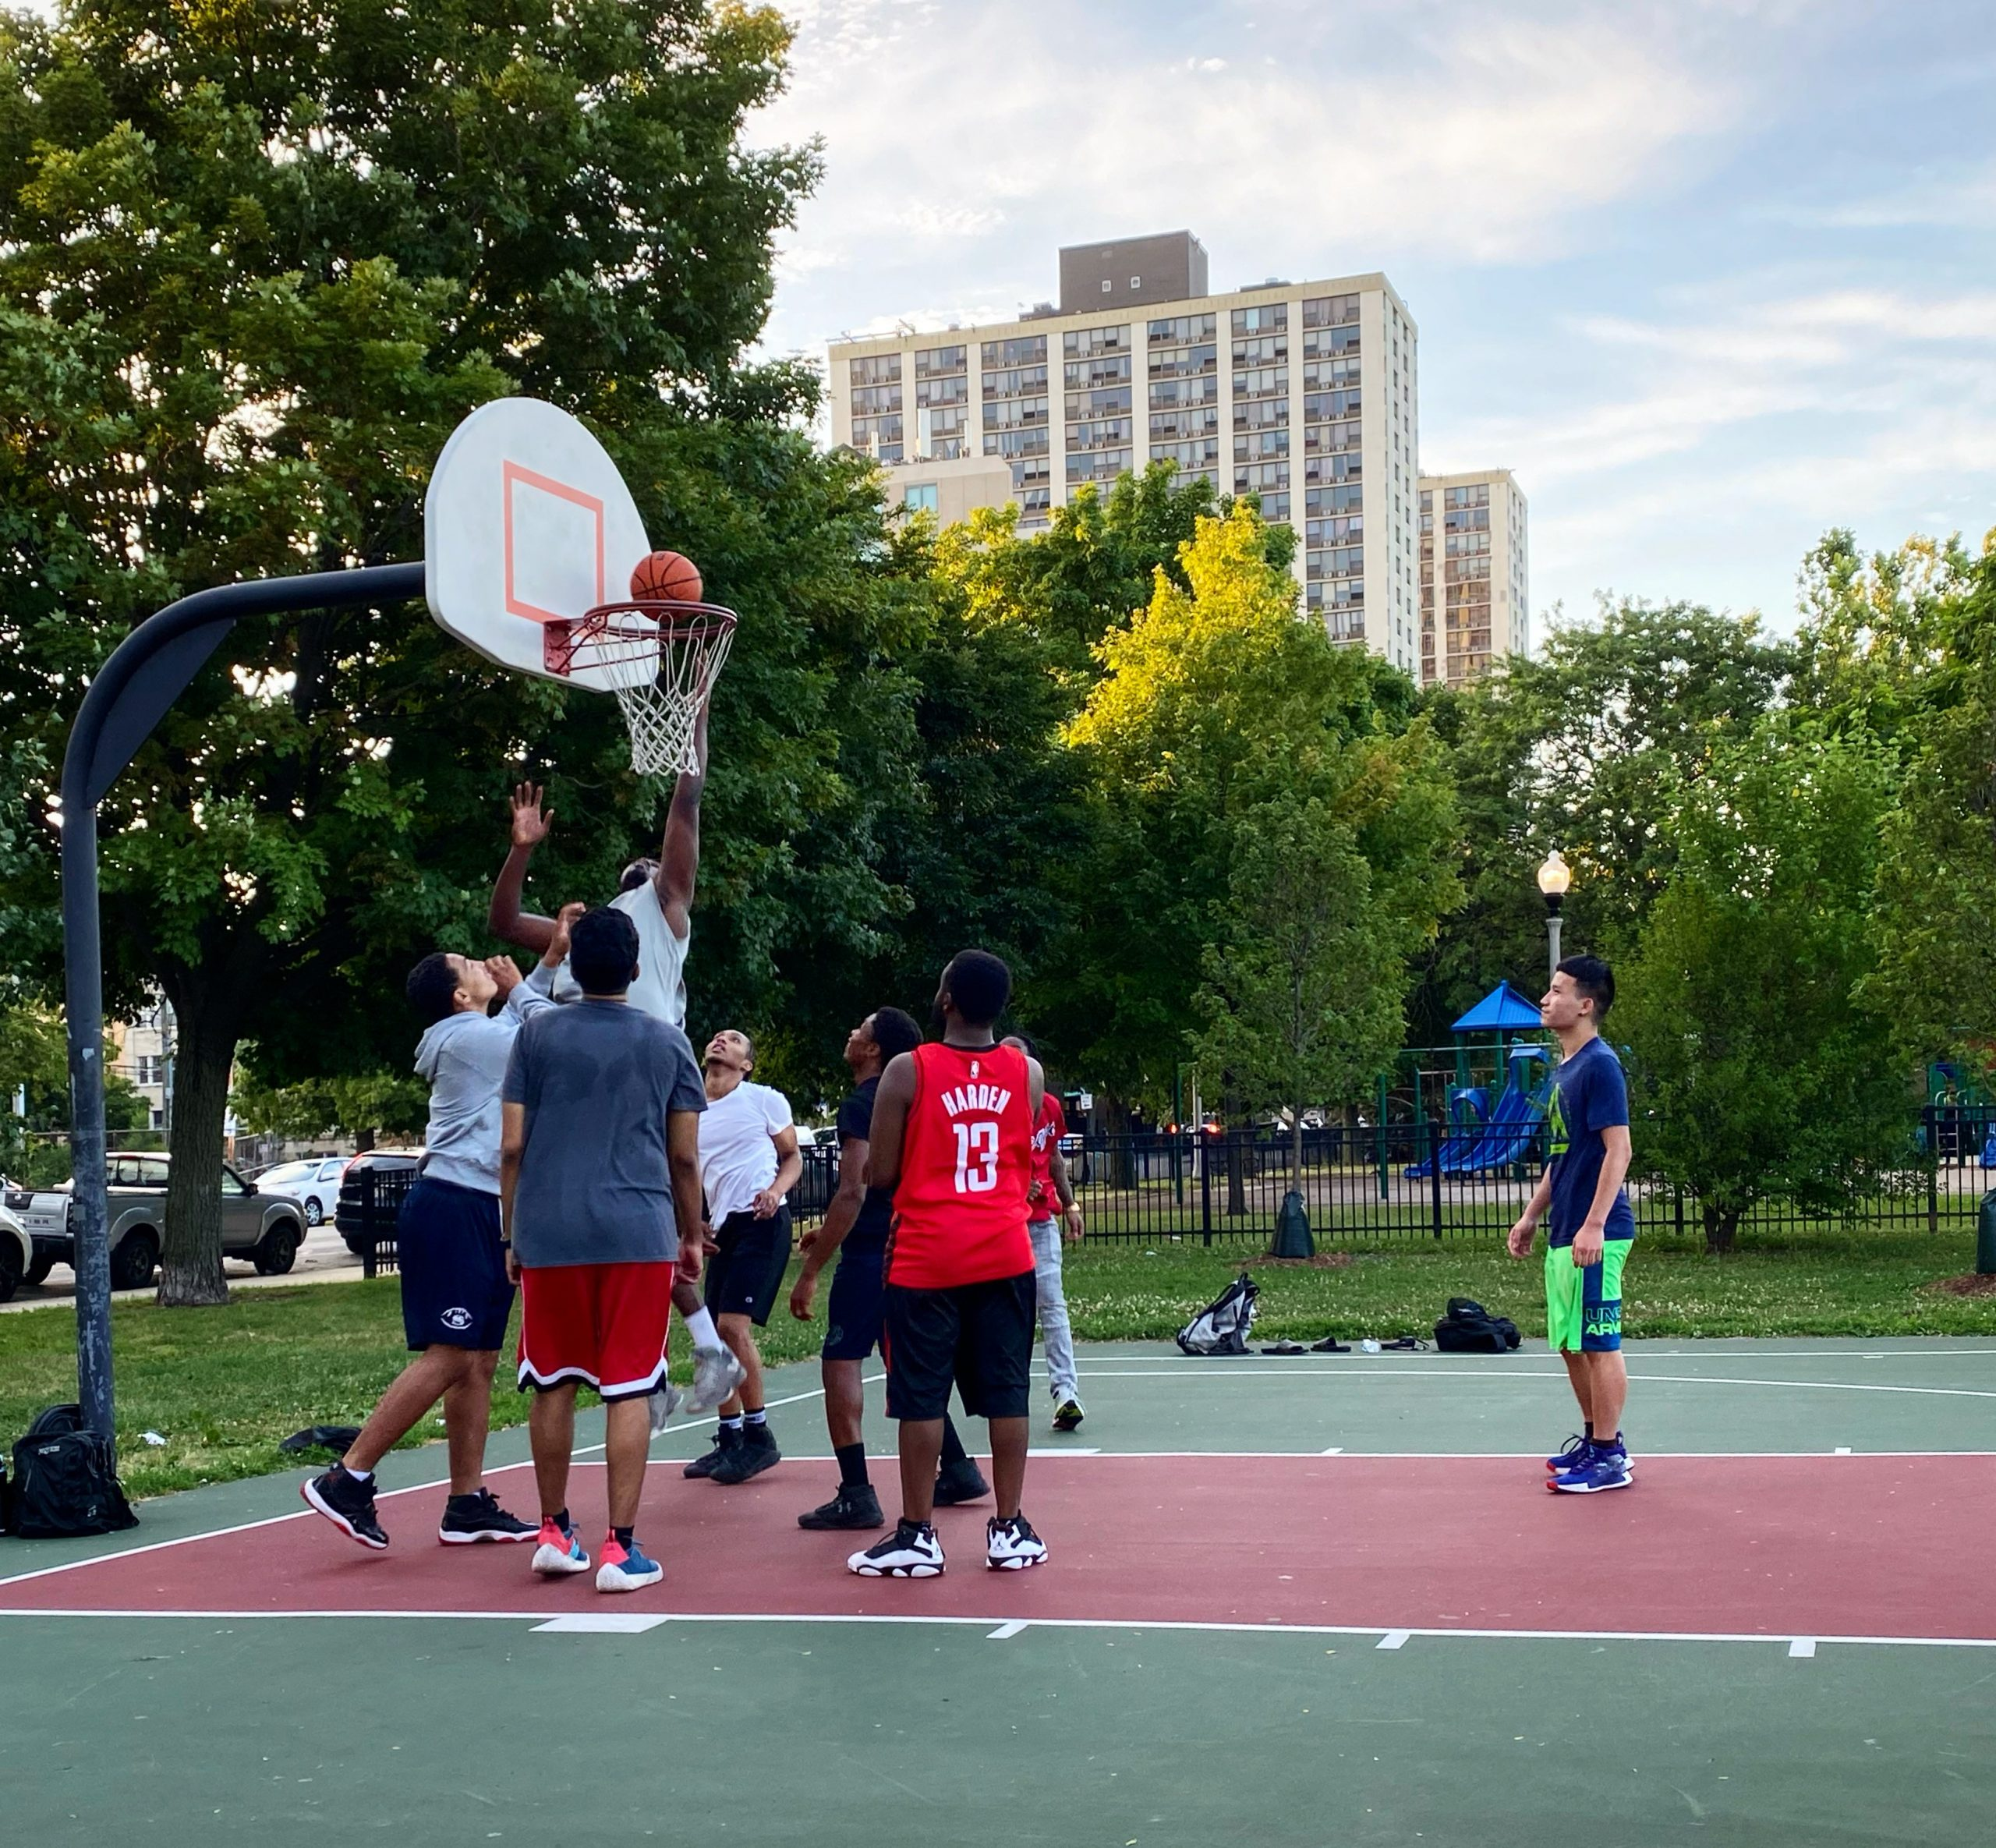 Ken Mason (red jersey) playing at the Clarendon Park basketball court in Uptown for the first time in July since the start of the pandemic. Mason had observed gentrified neighborhoods were less policed and impacted during the shutdown compared to the south and west sides of the city.